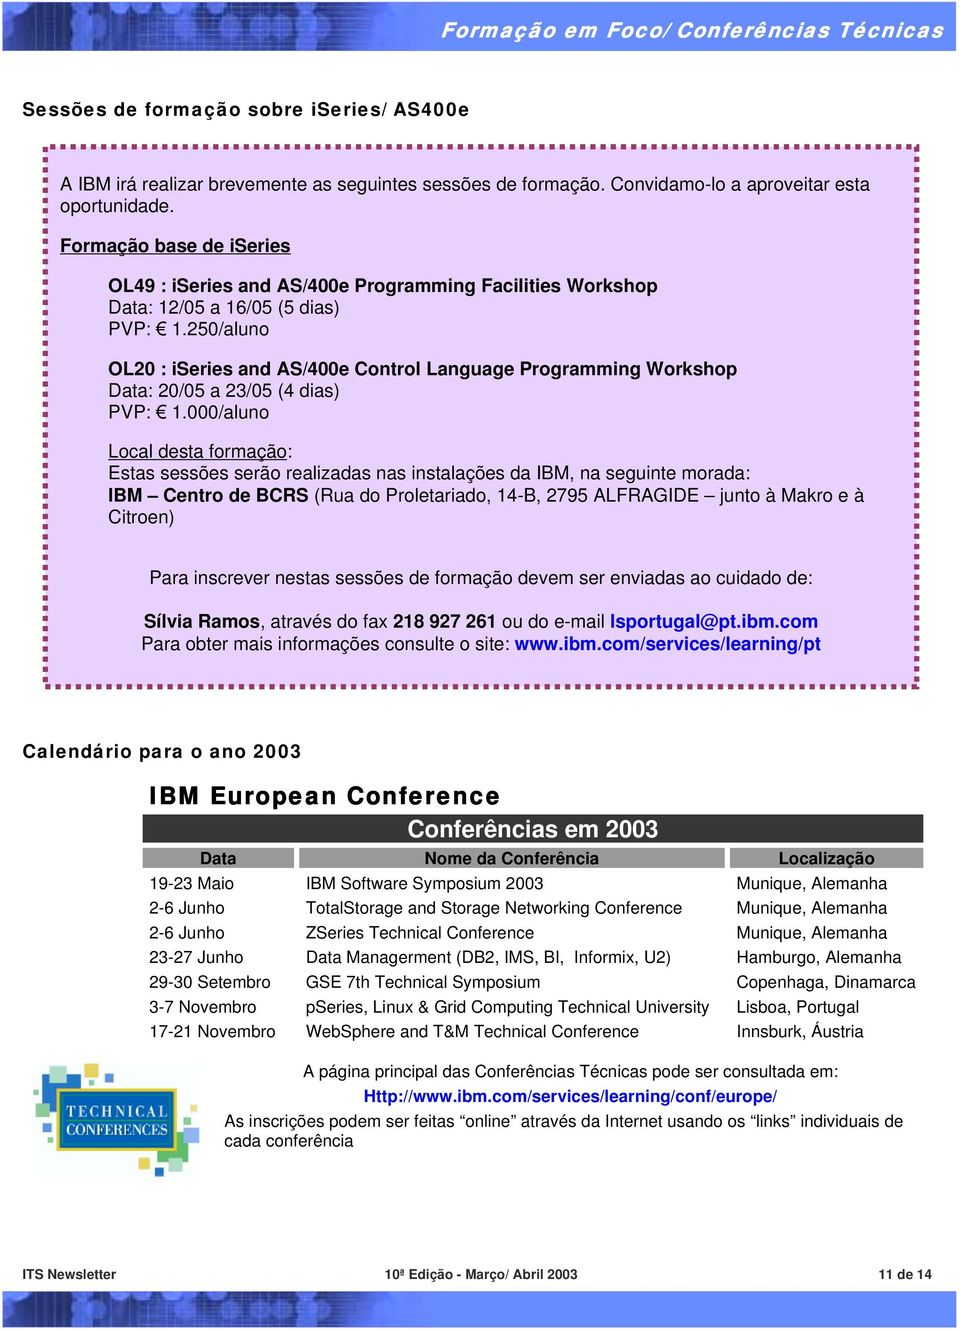 250/aluno OL20 : iseries and AS/400e Control Language Programming Workshop Data: 20/05 a 23/05 (4 dias) PVP: 1.